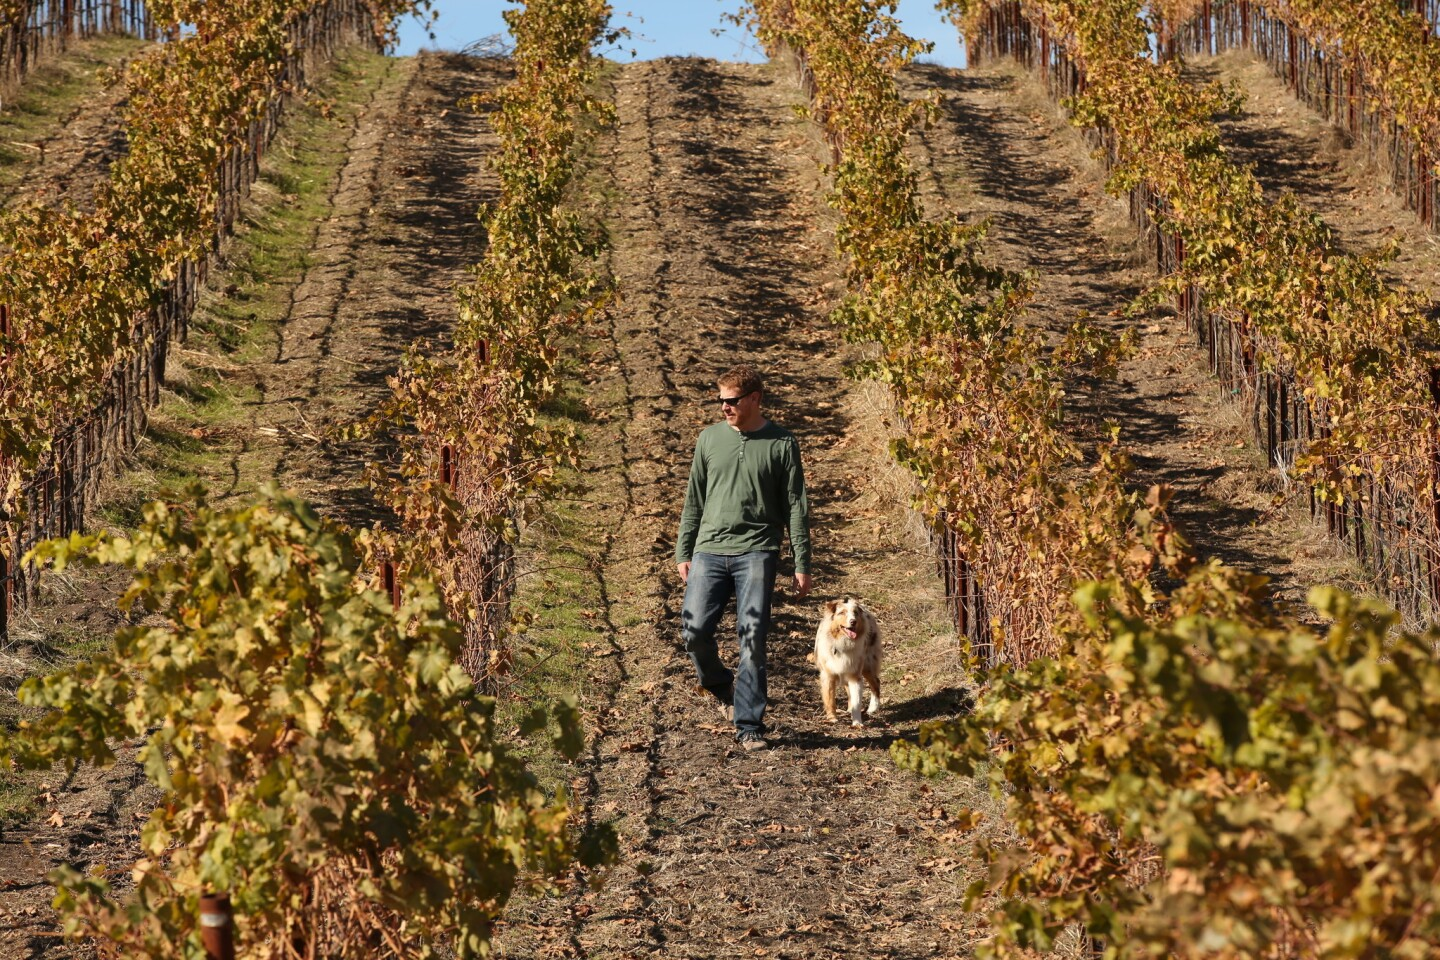 Jason Haas, partner and general manager of Tablas Creek Vineyard planted in 1992, walks through the limestone-rich 120-acre organic estate vineyard in the hills north and west of Paso Robles. The vineyard has taken several measures meant to capture predicted rain from El Niño.